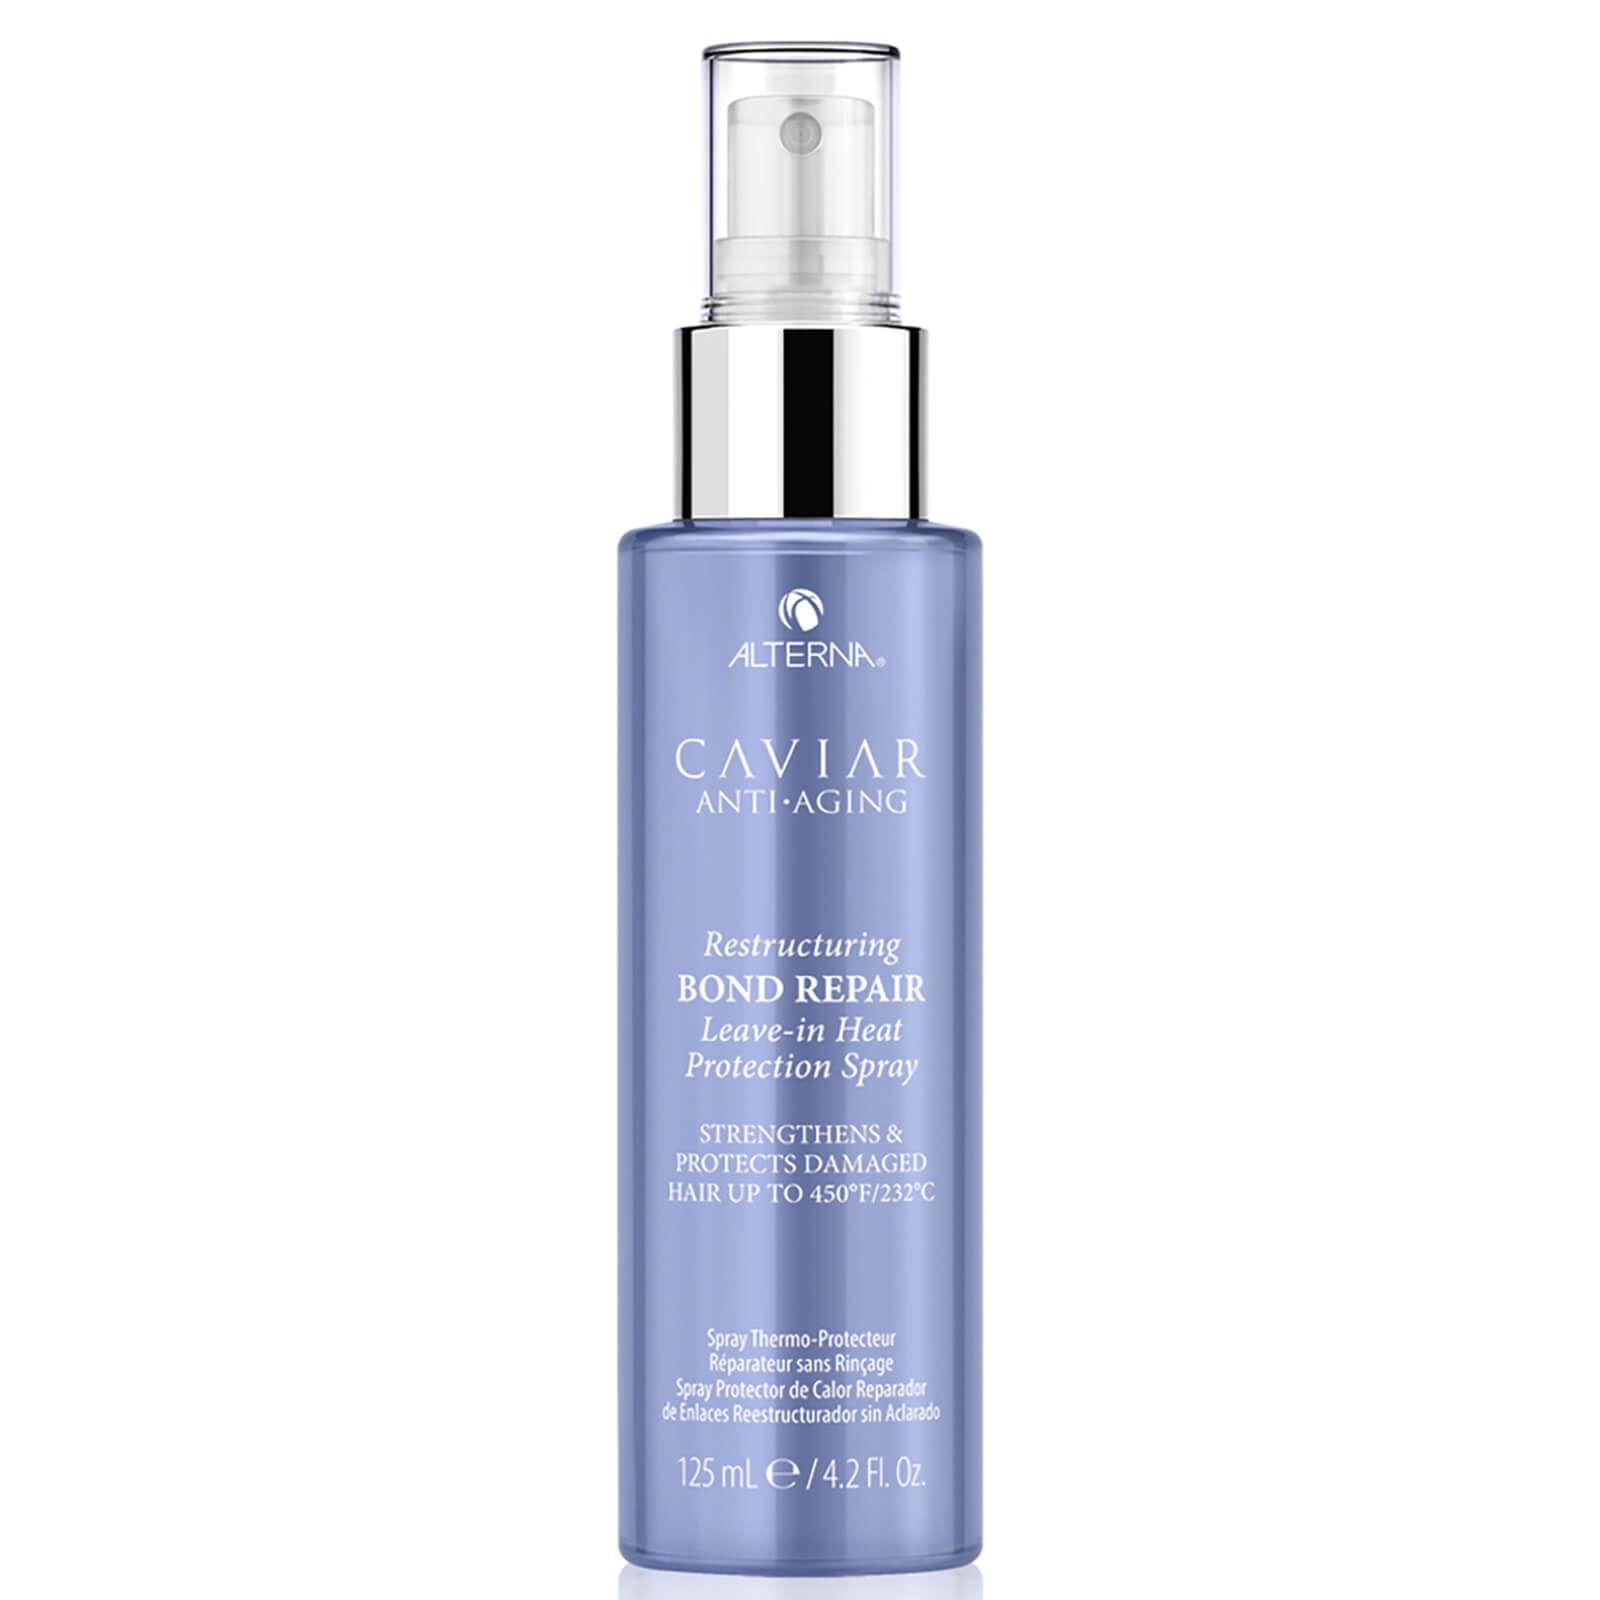 CAVIAR Anti-Aging® Restructuring Bond Repair Leave-In Heat Protection Spray